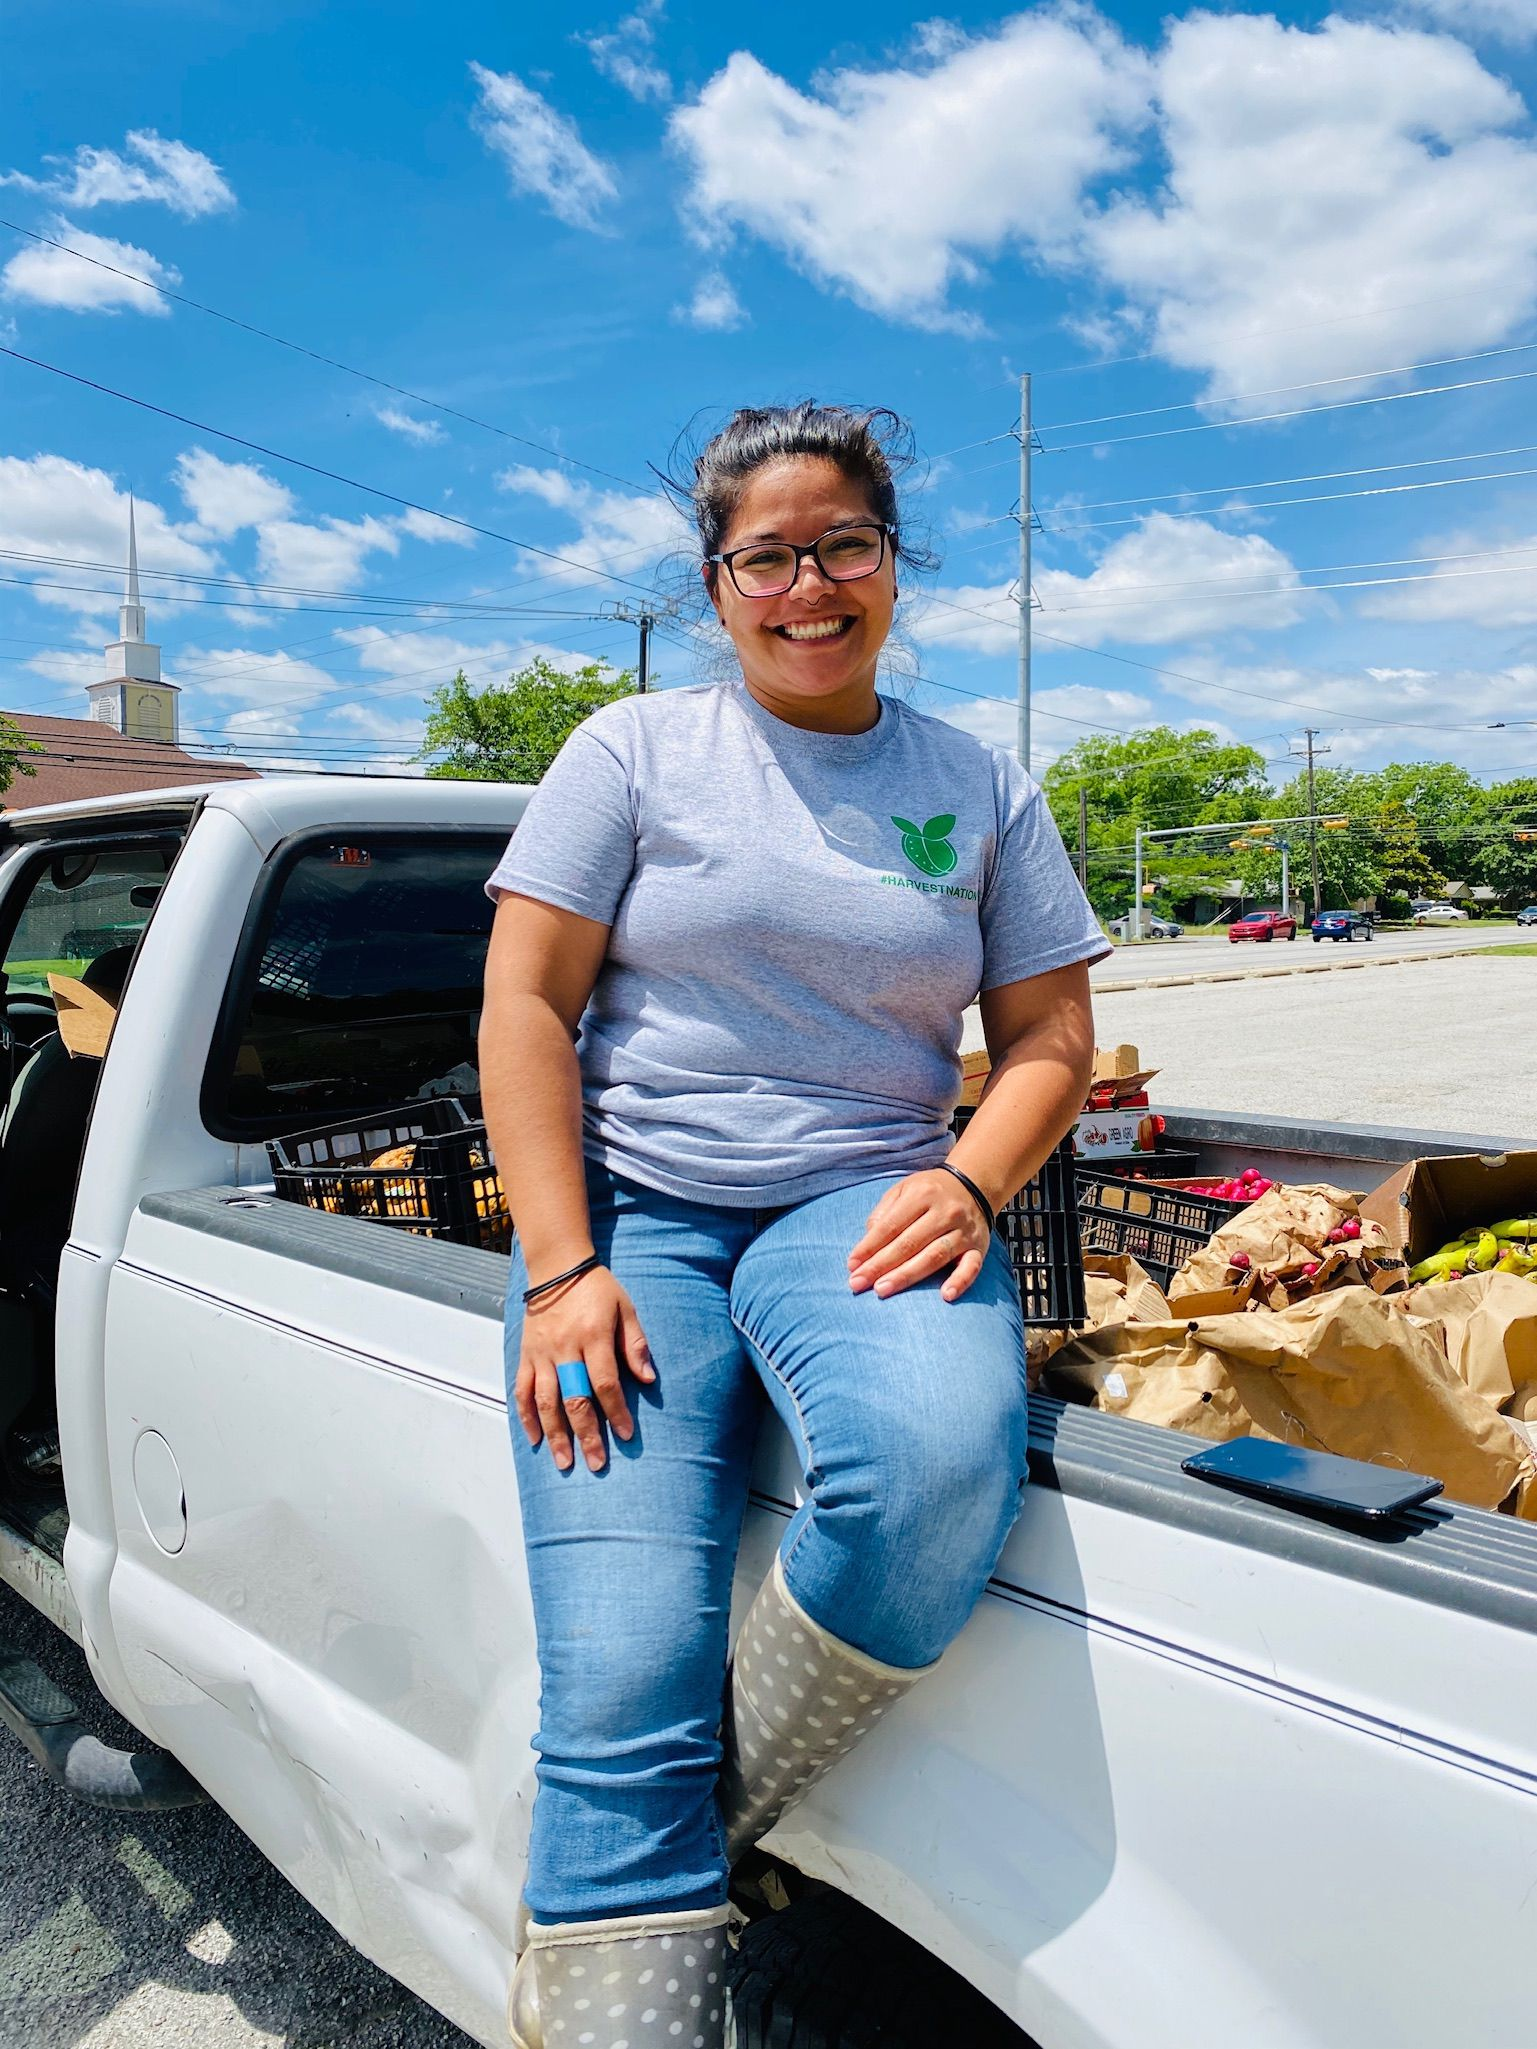 Danae Gutierrez is the founder and executive director of Harvest Project Food Rescue in Dallas.